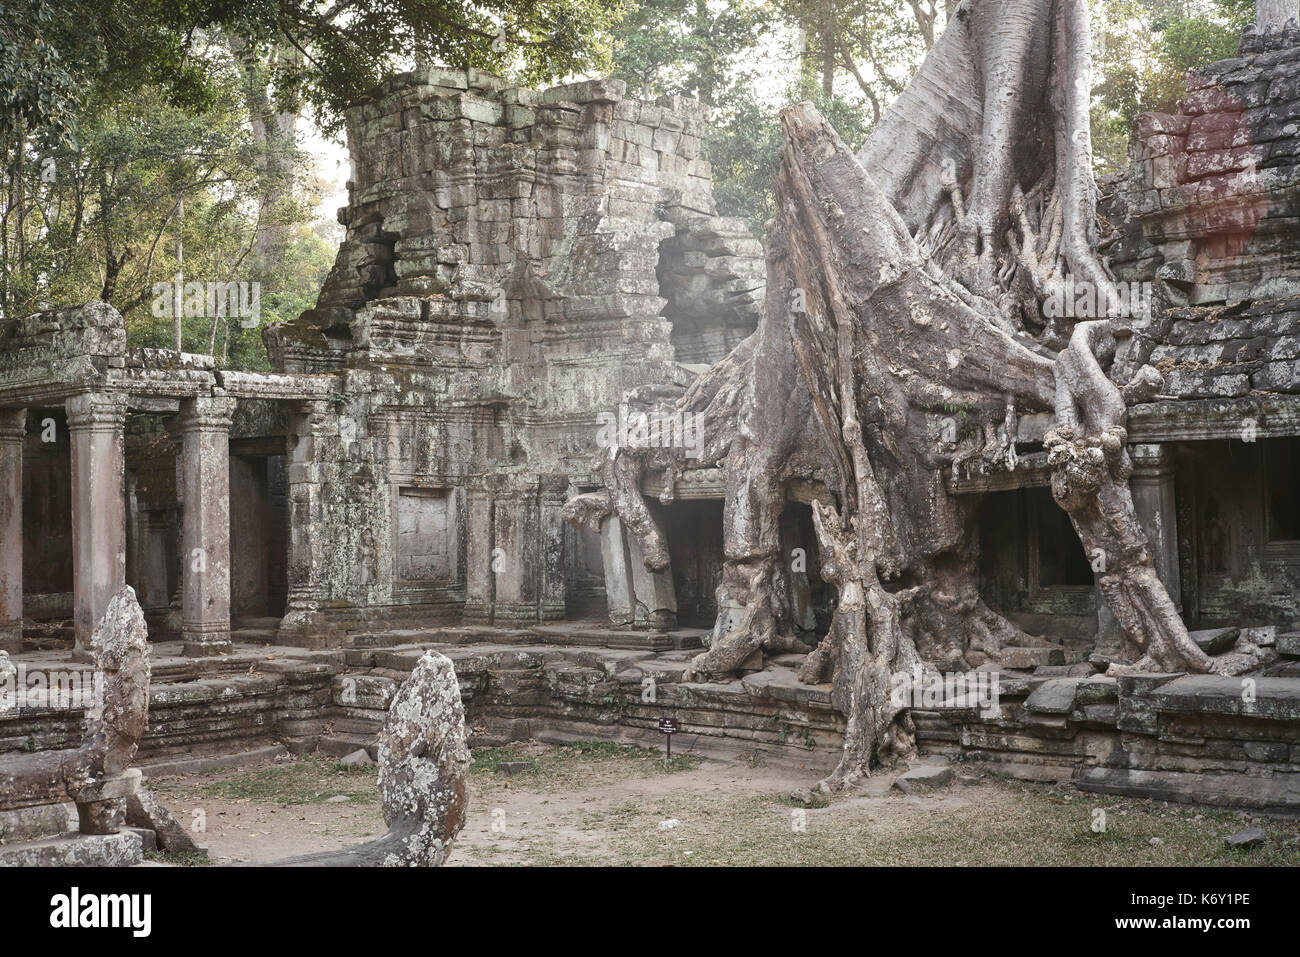 Green forest and tree growing on the Temple of Preah Kahn in Angkor, Siem Reap, Cambodia - Stock Image